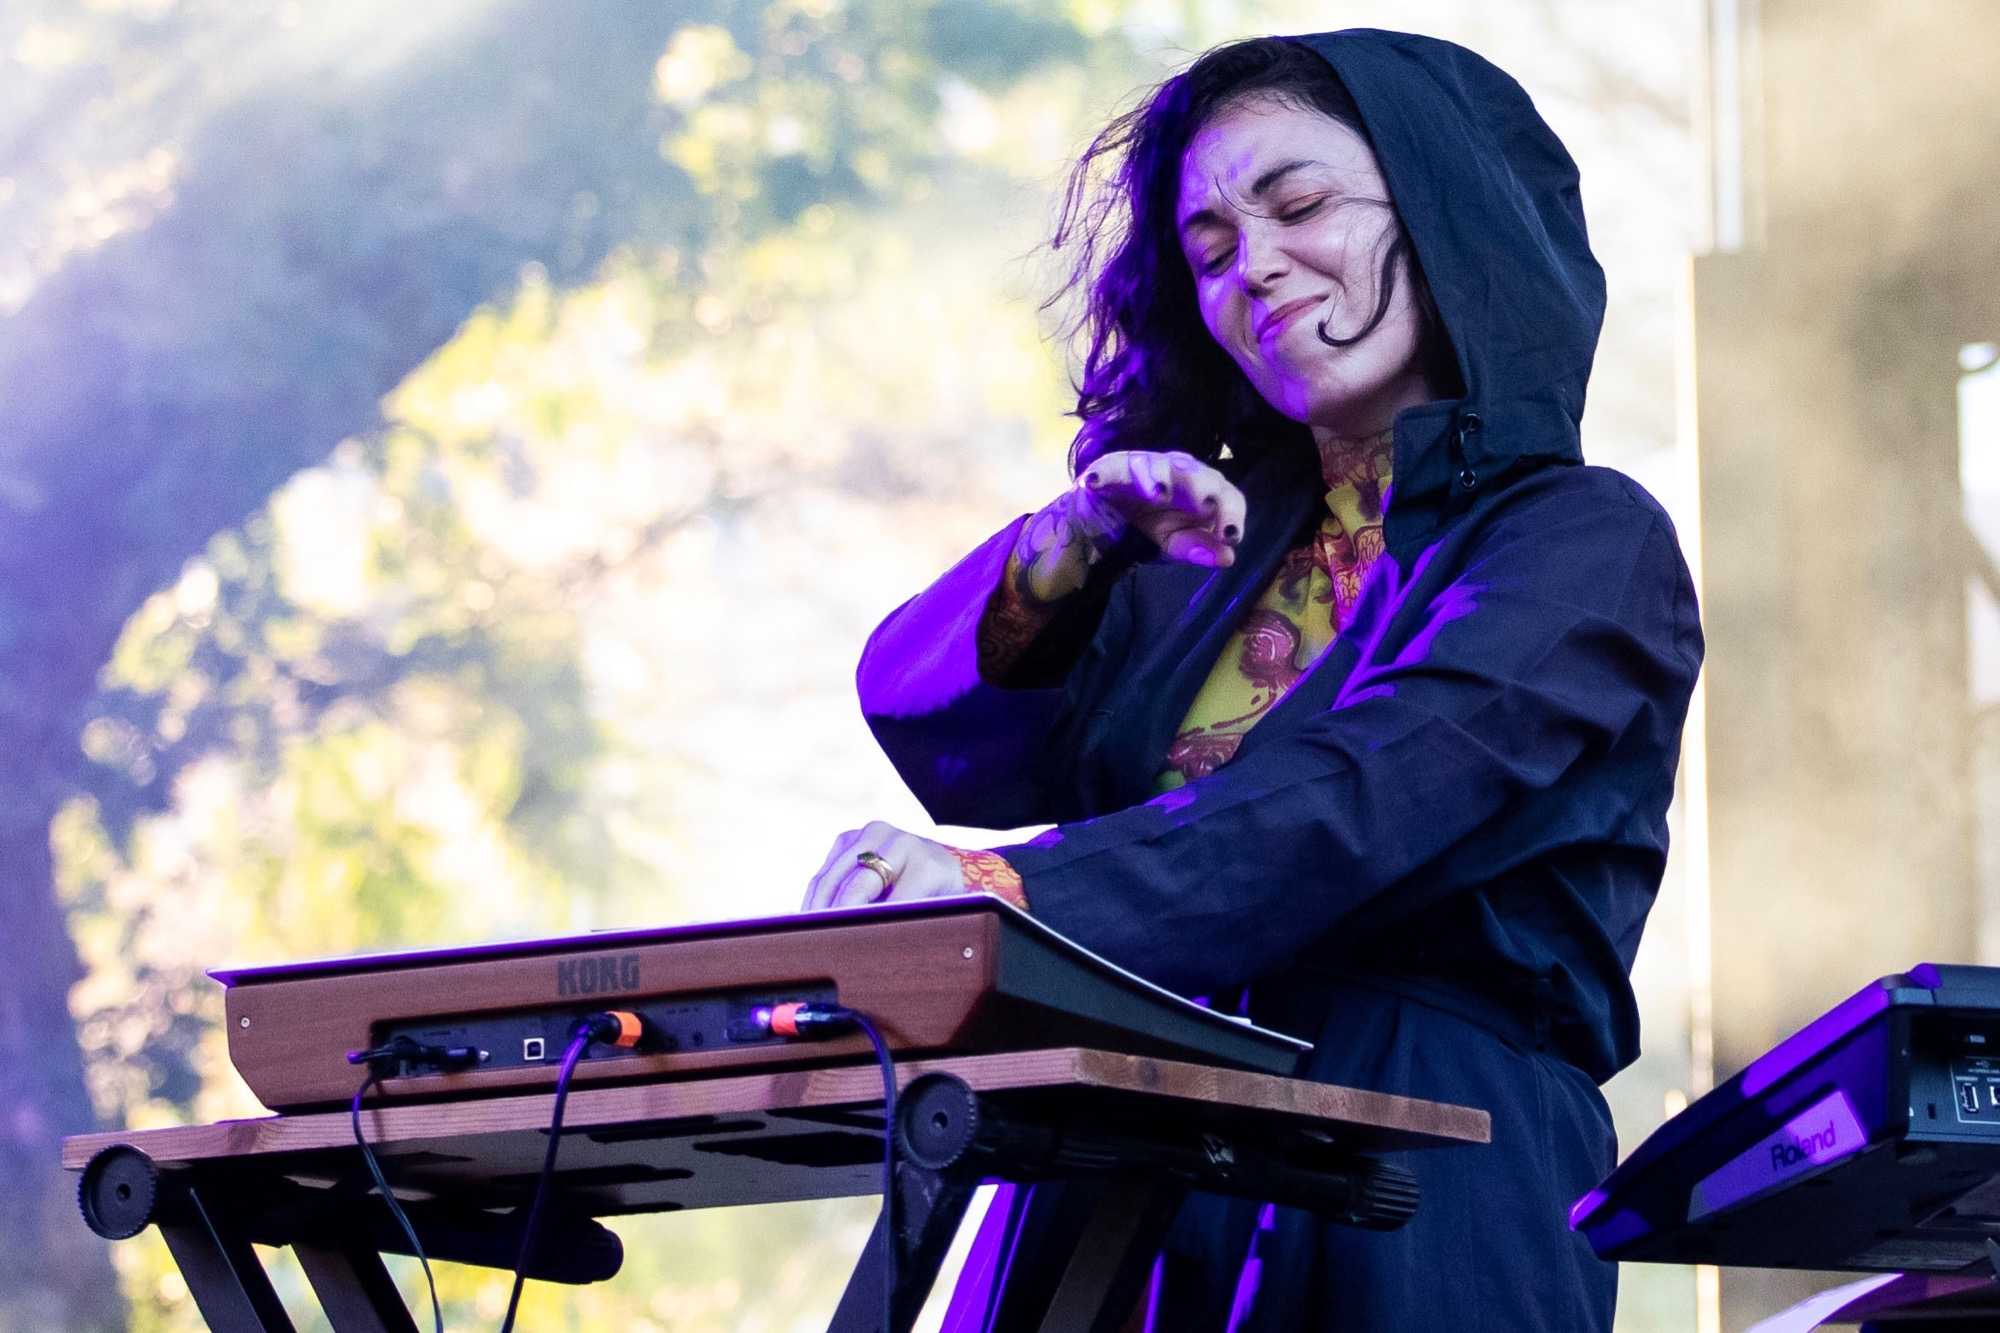 Kelly Lee Owens performs at the Pitchfork Music Festival in Chicago on Sep. 10, 2021.